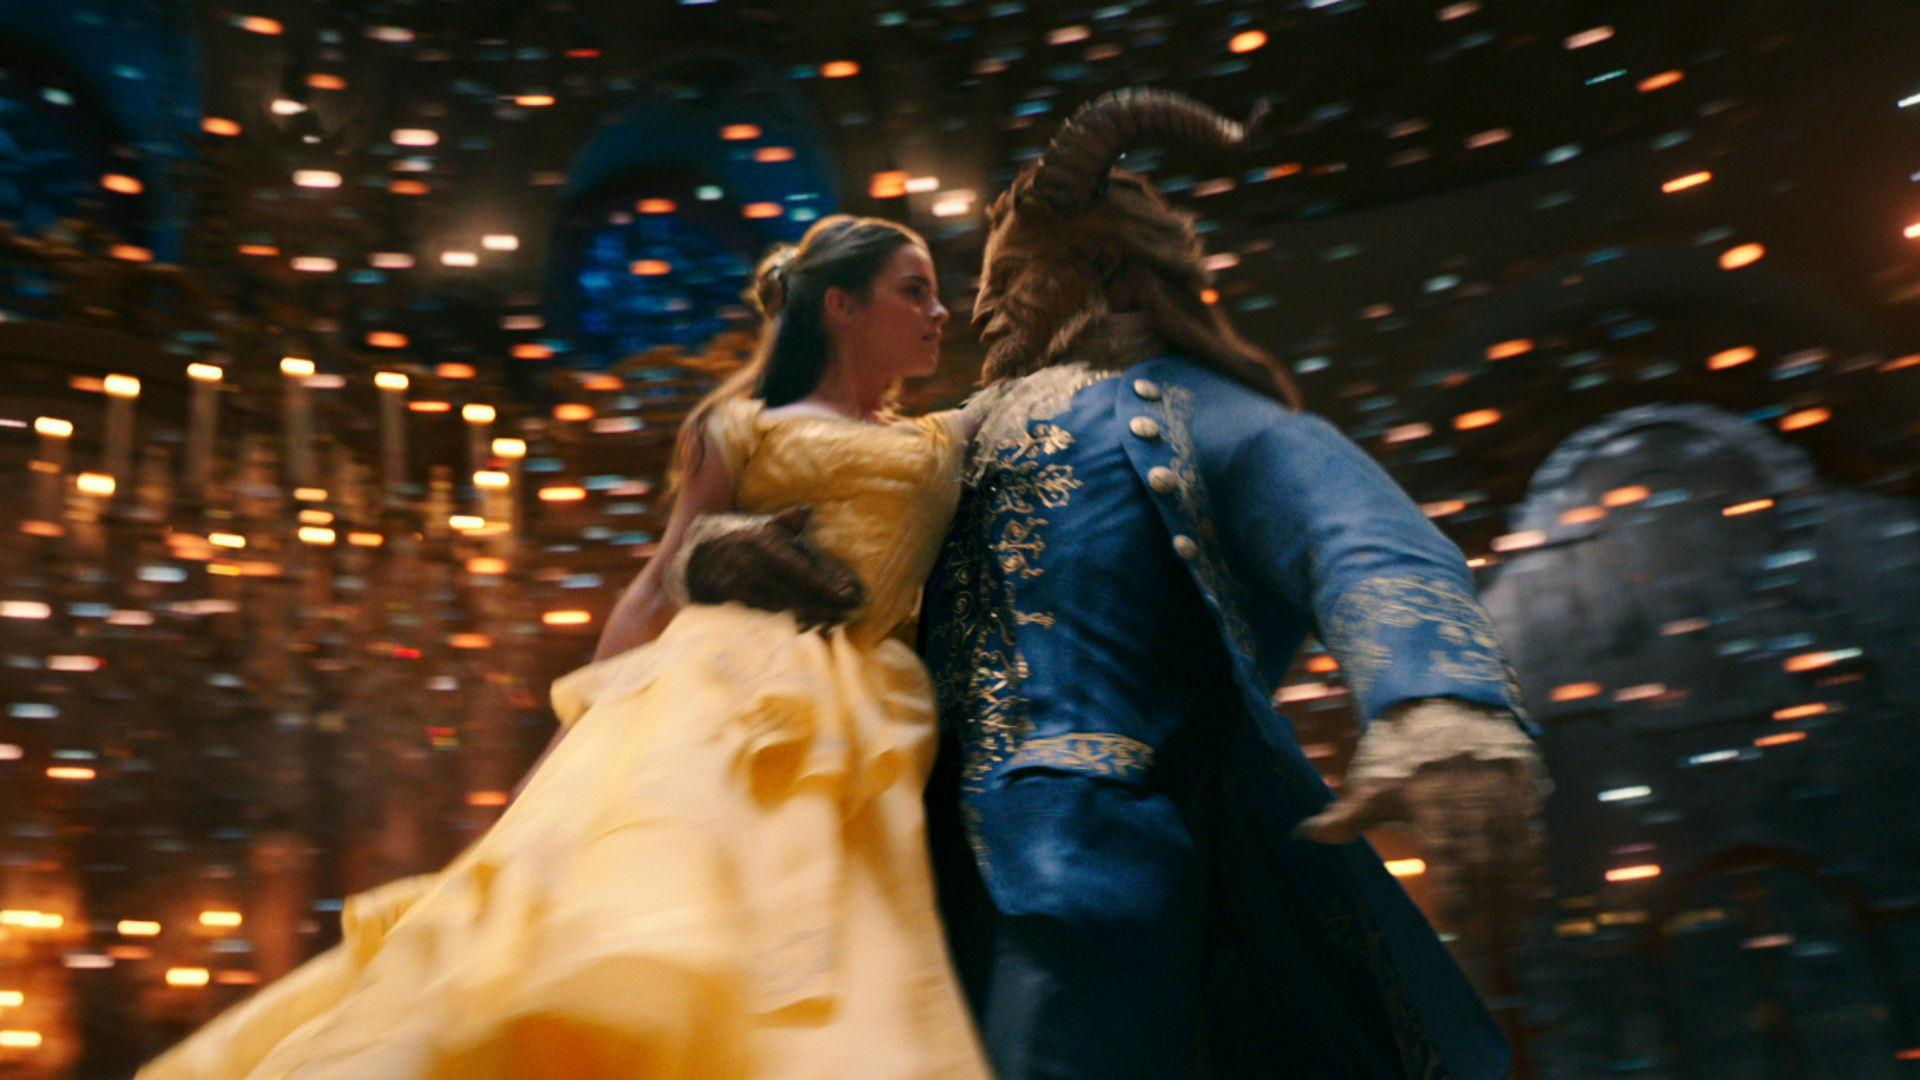 Beauty and the Beast Hindi Dubbed Torrent Movie Download 2017 Hollywood Full Film